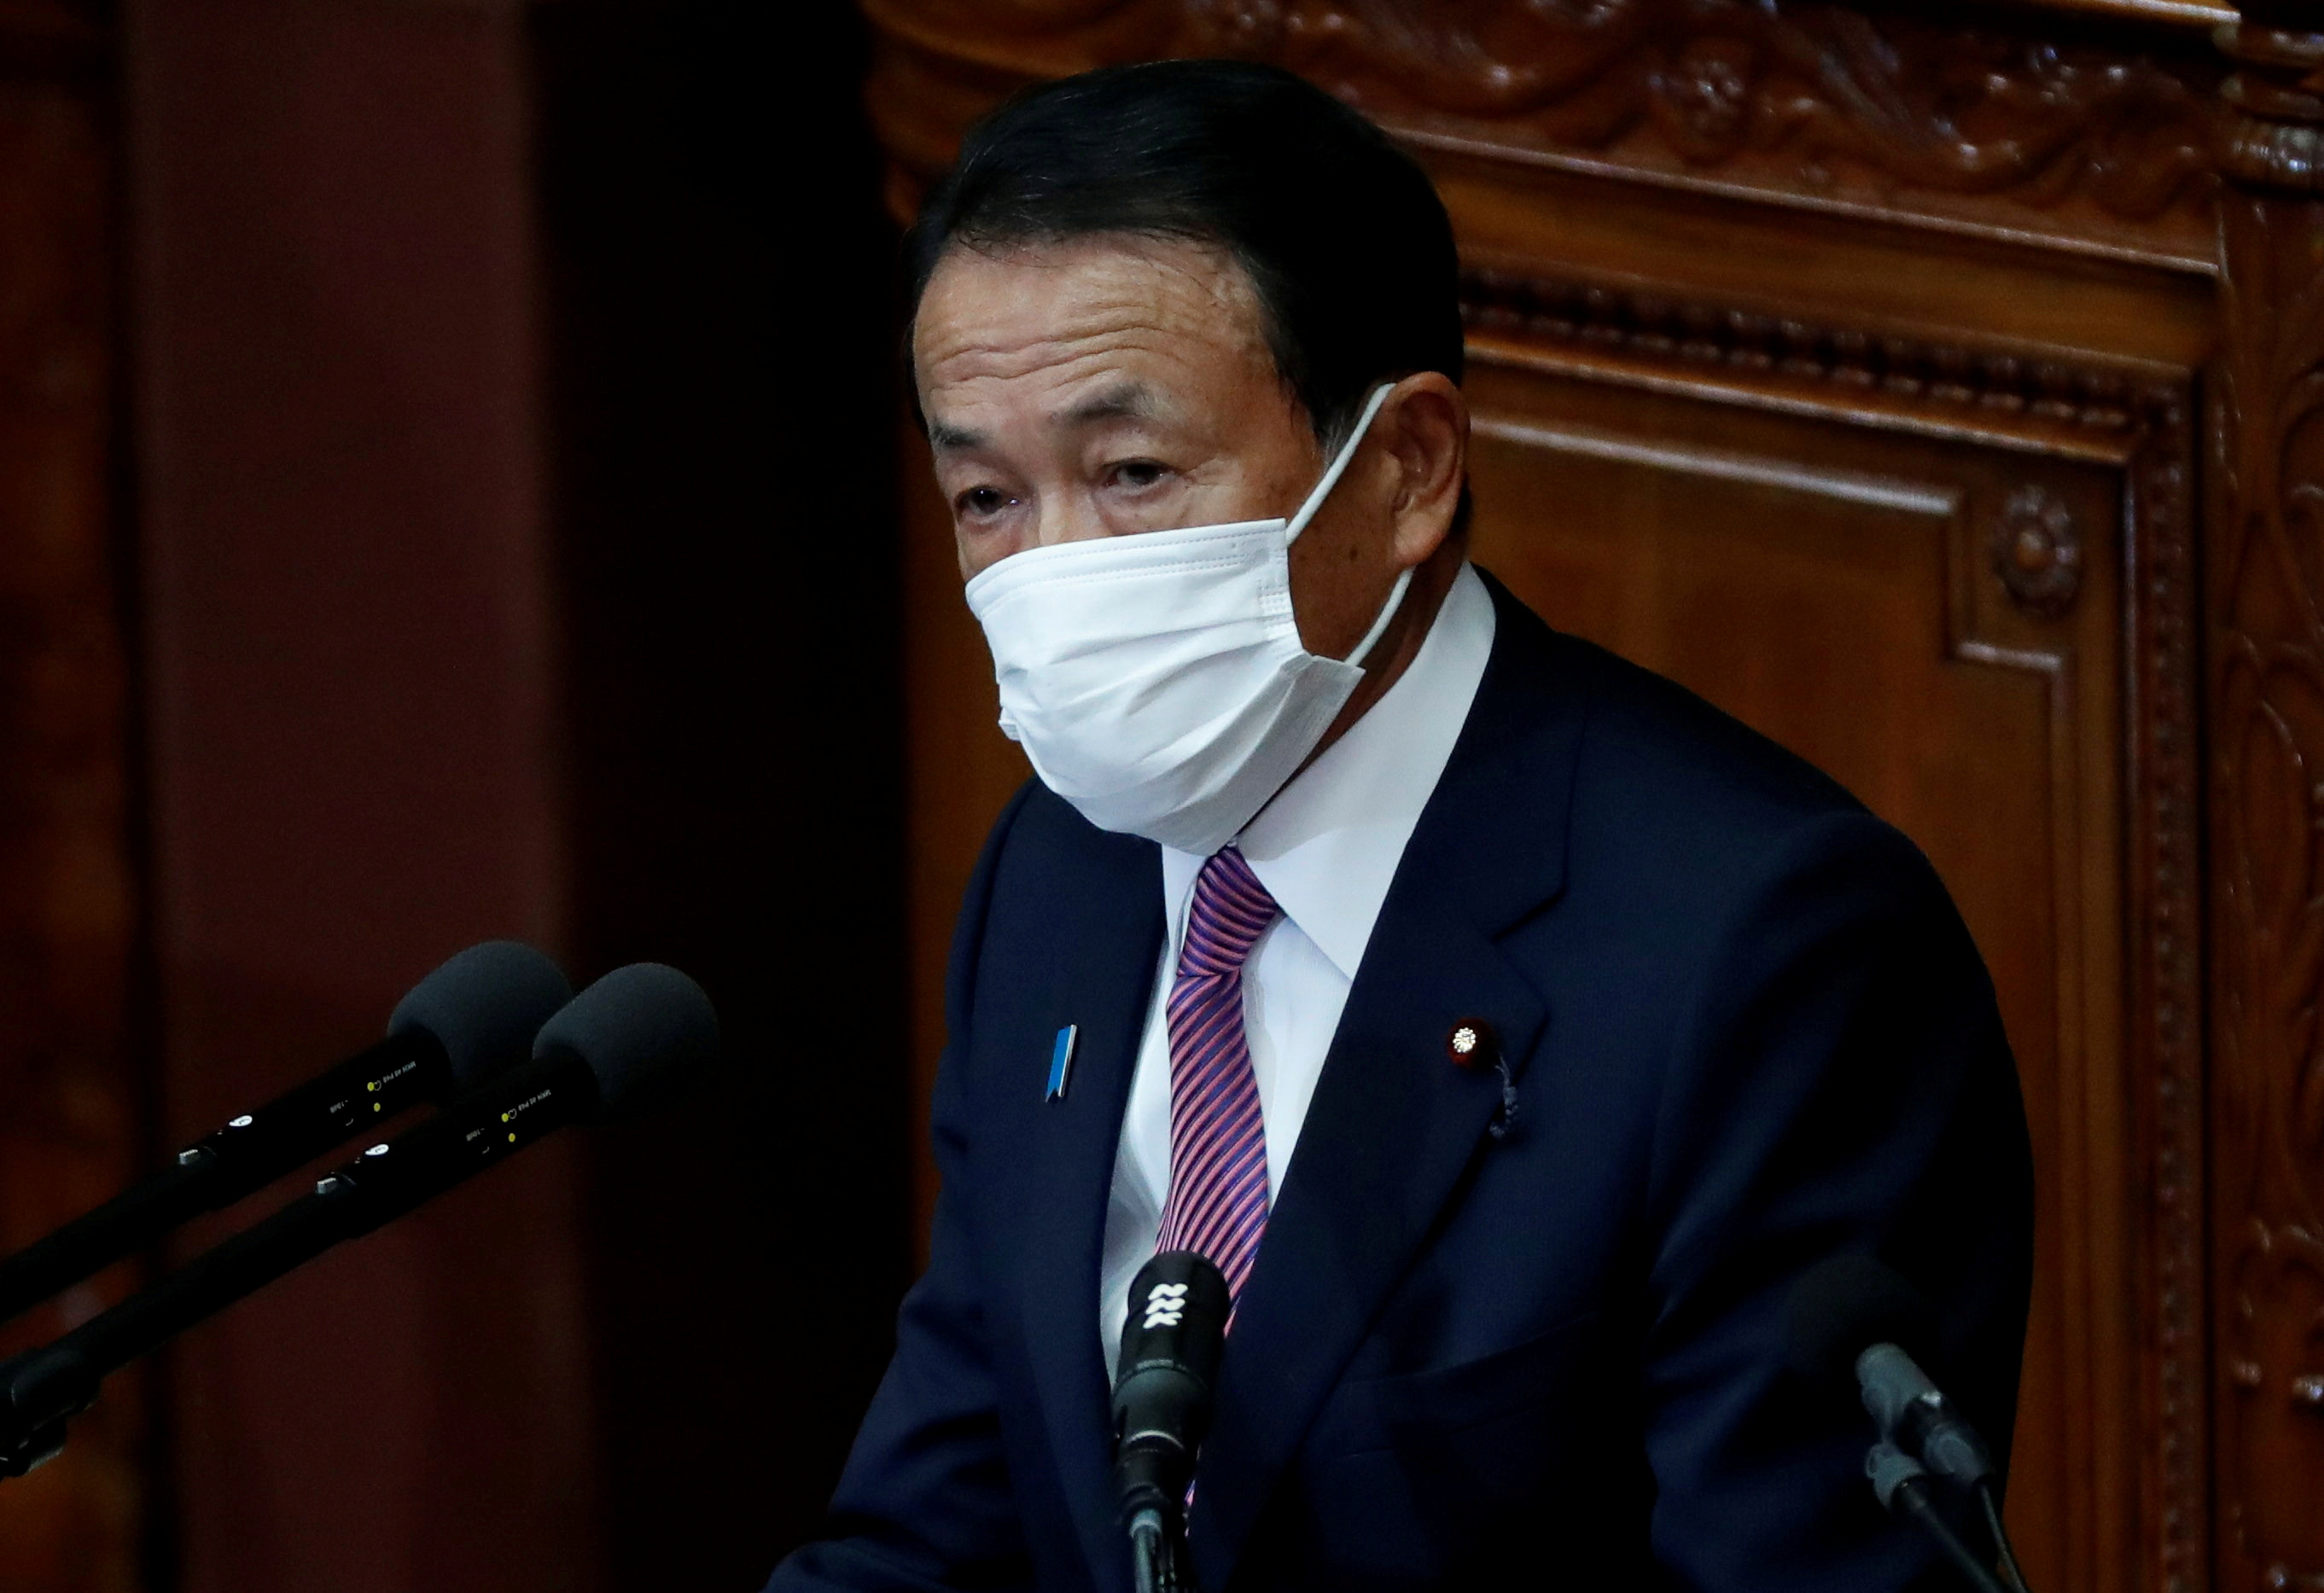 Japan's Deputy Prime Minister and Finance Minister Taro Aso, wearing a protective face mask, delivers his policy speech at the opening of an ordinary session of the parliament in Tokyo, Japan January 18, 2021. REUTERS/Issei Kato